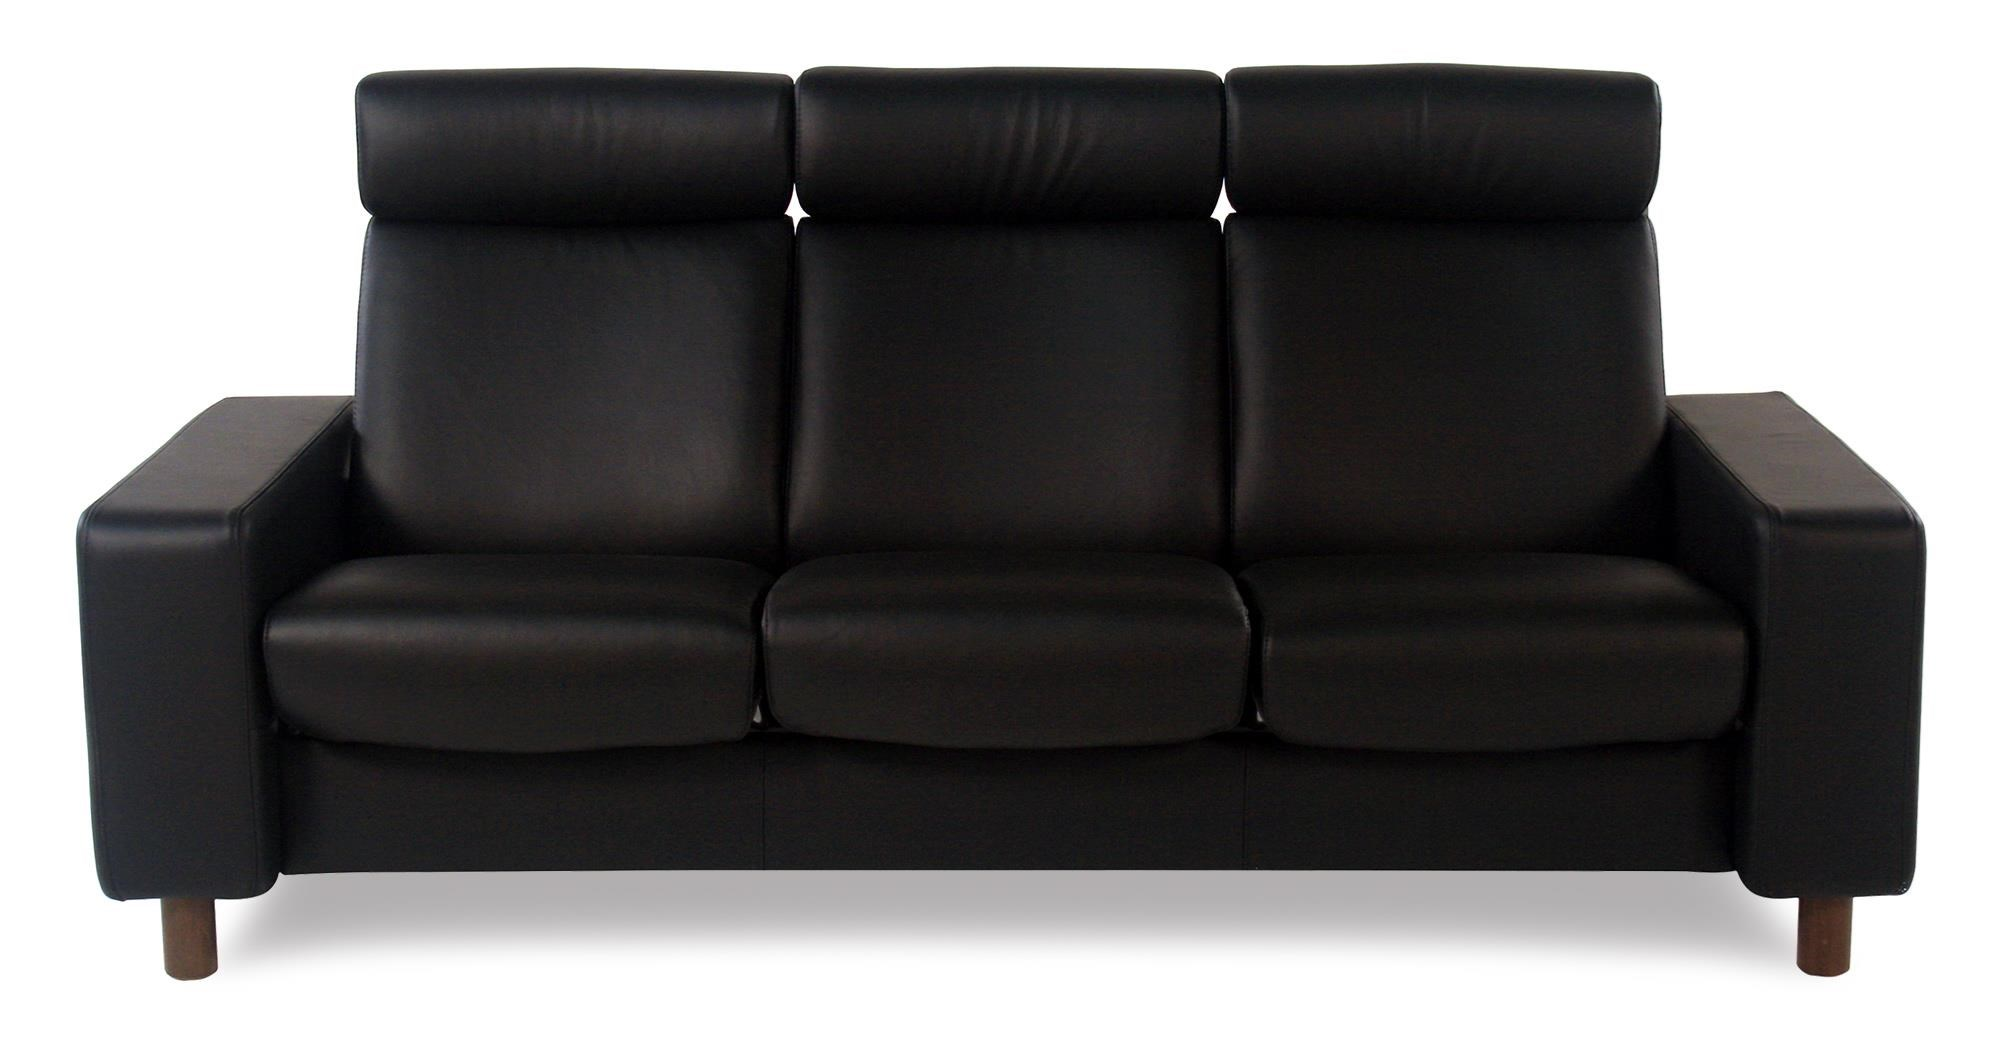 Stressless Cream Sofa High Back Sofa Stressless Buckingham 3 Seat High Back Sofa